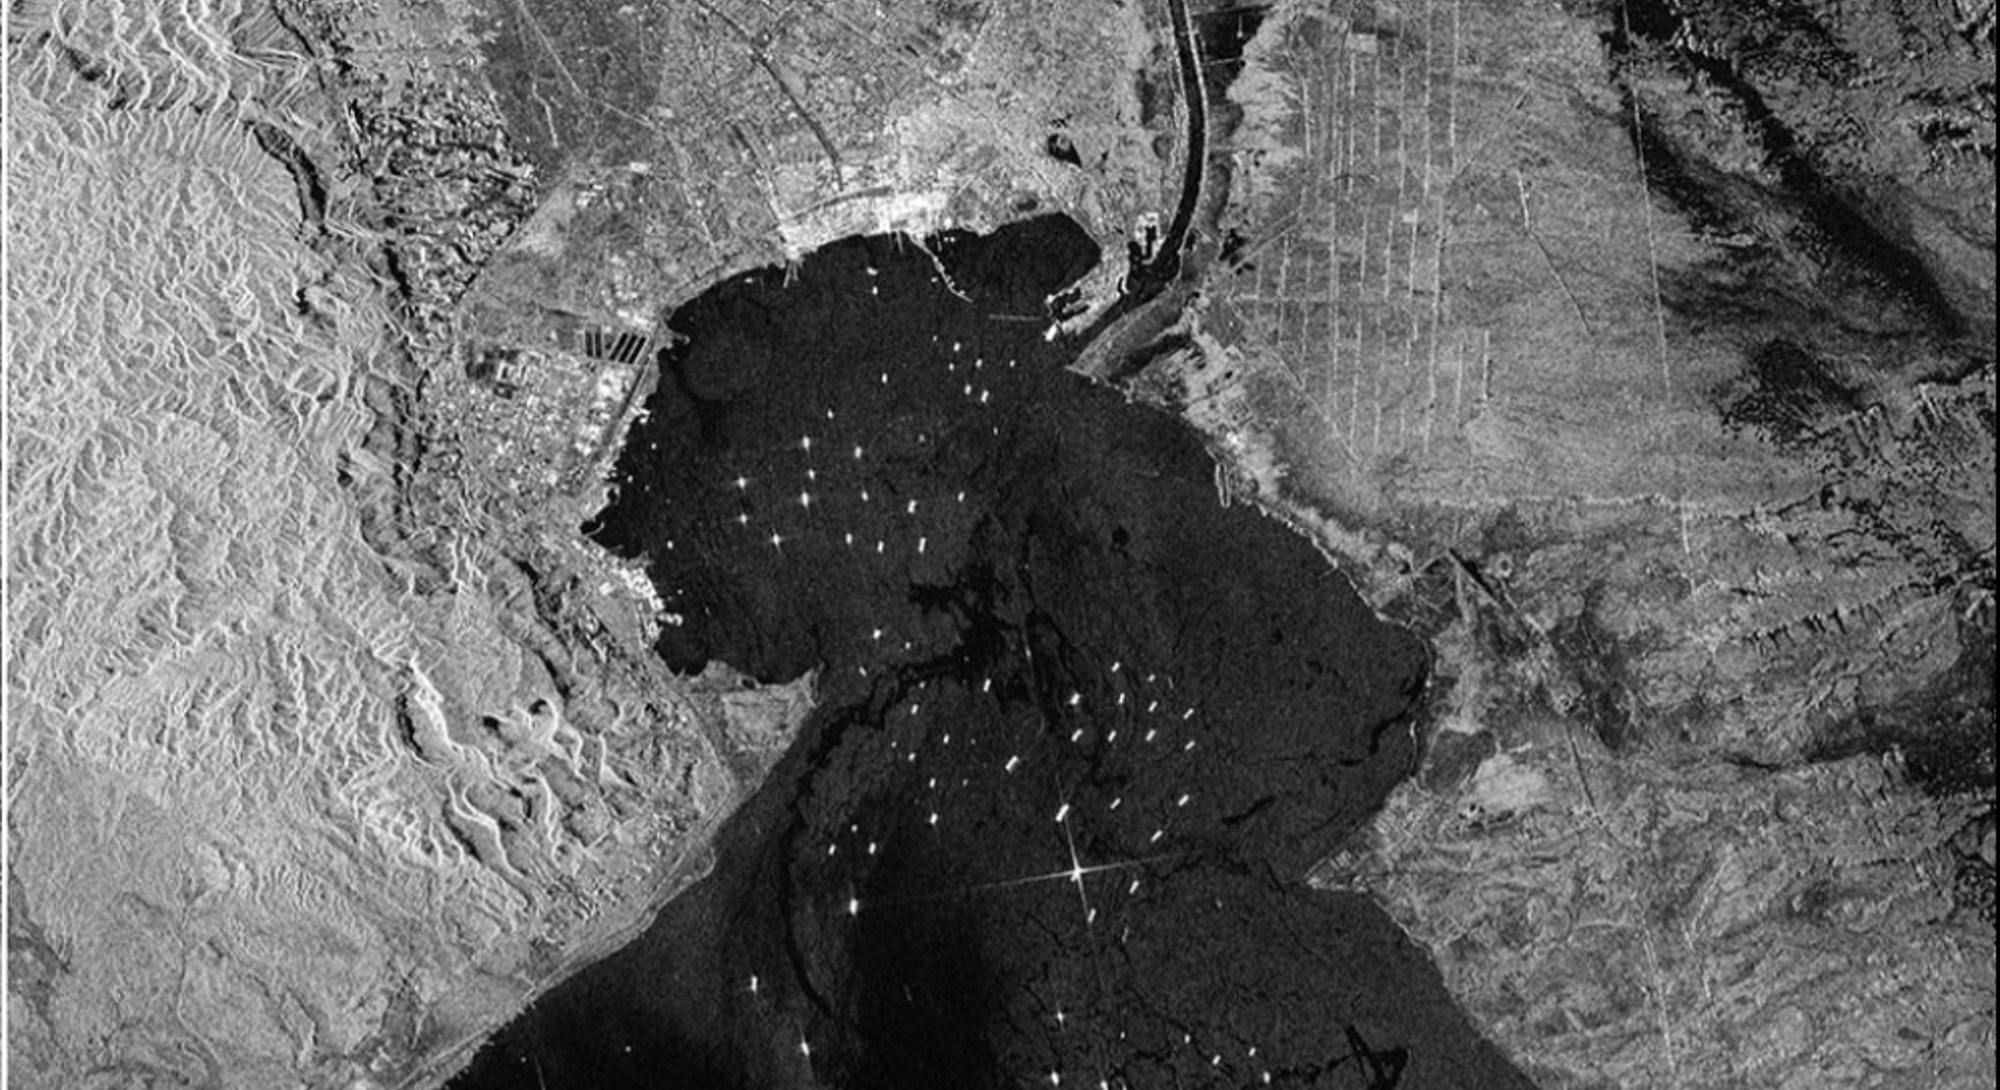 THE ENORMOUS EVER GIVEN CONTAINER SHIP, WEDGED IN EGYPT'S SUEZ CANAL, IS VISIBLE IN NEW IMAGES CAPTURED BY THE COPERNICUS SENTINEL-1 MISSION